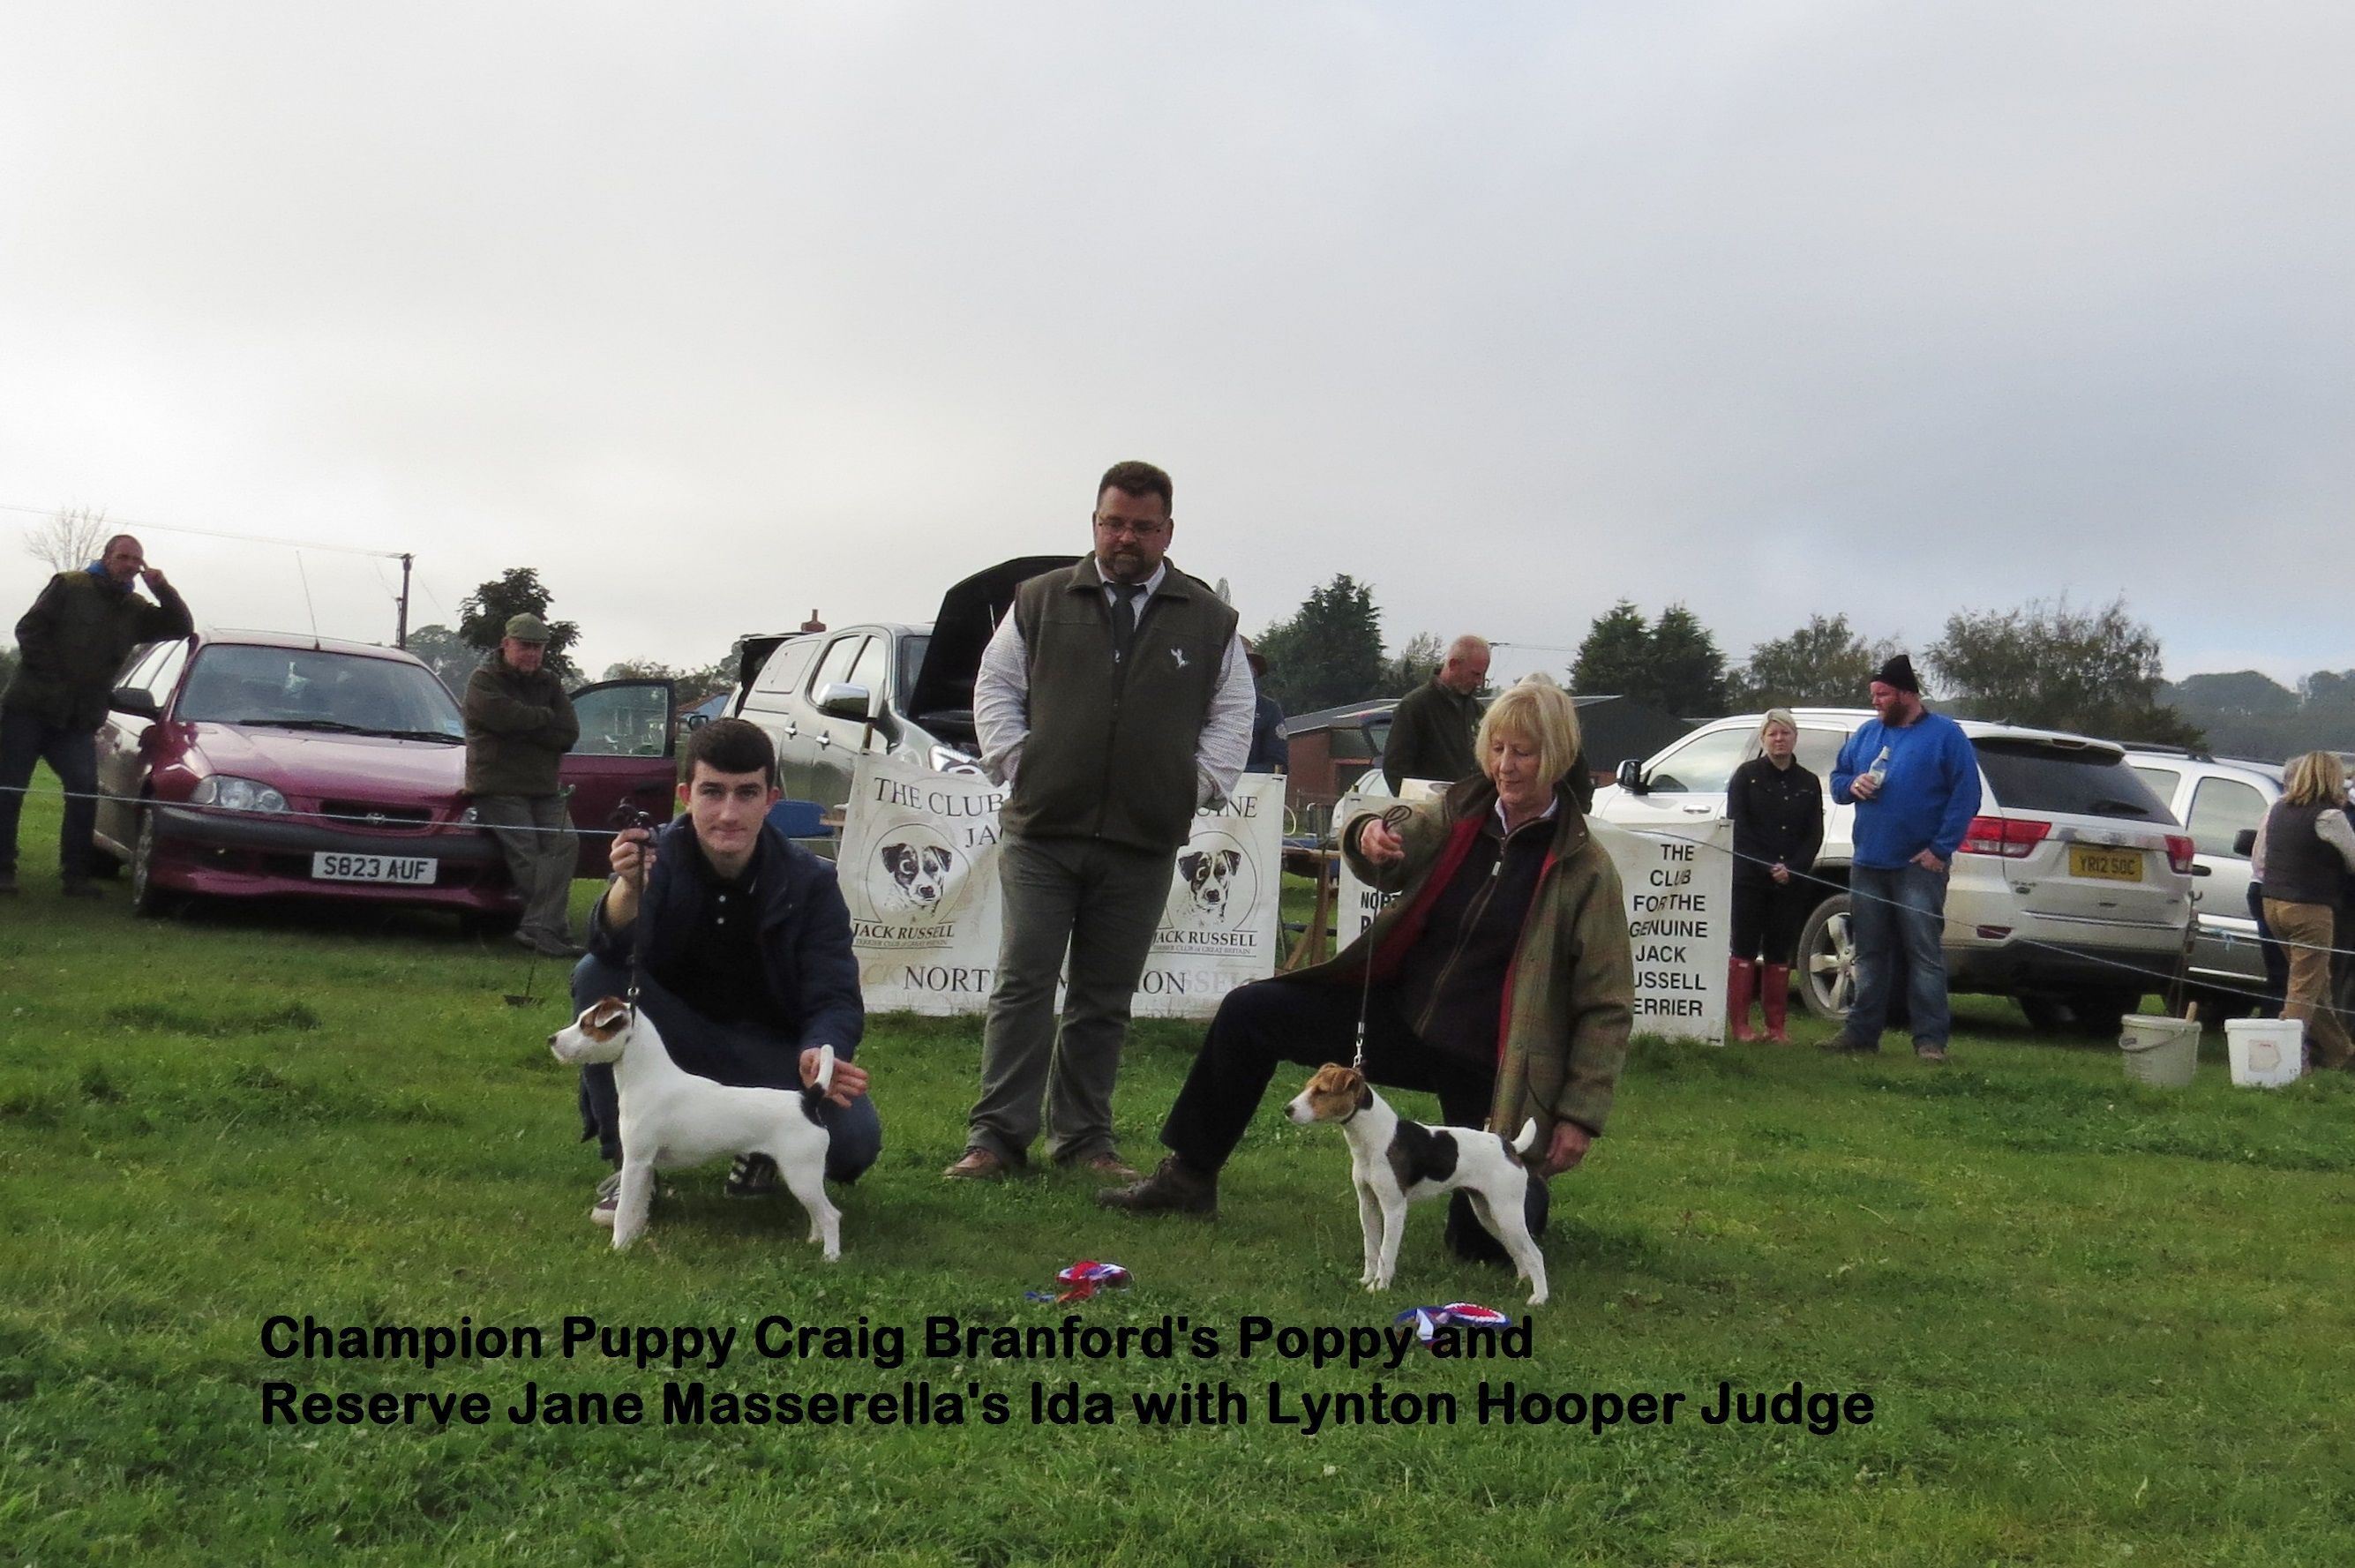 Champion Puppy Craig Branford - Poppy and Reserve Jane Masserella - Ida | Judge Lynton Hooper